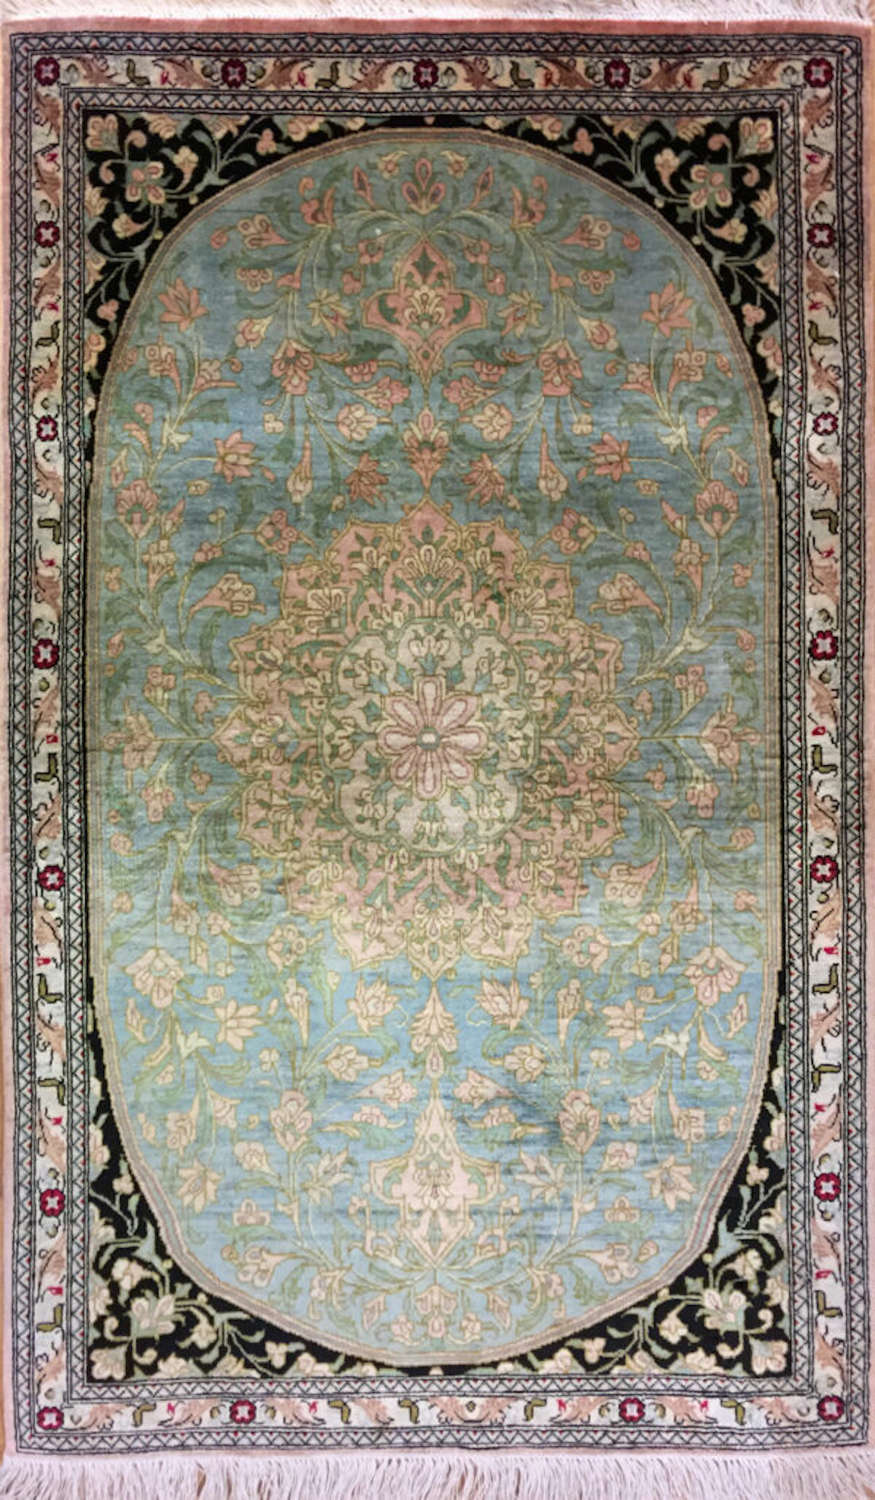 Silk Rugs, Persian Silk Rugs From Qum